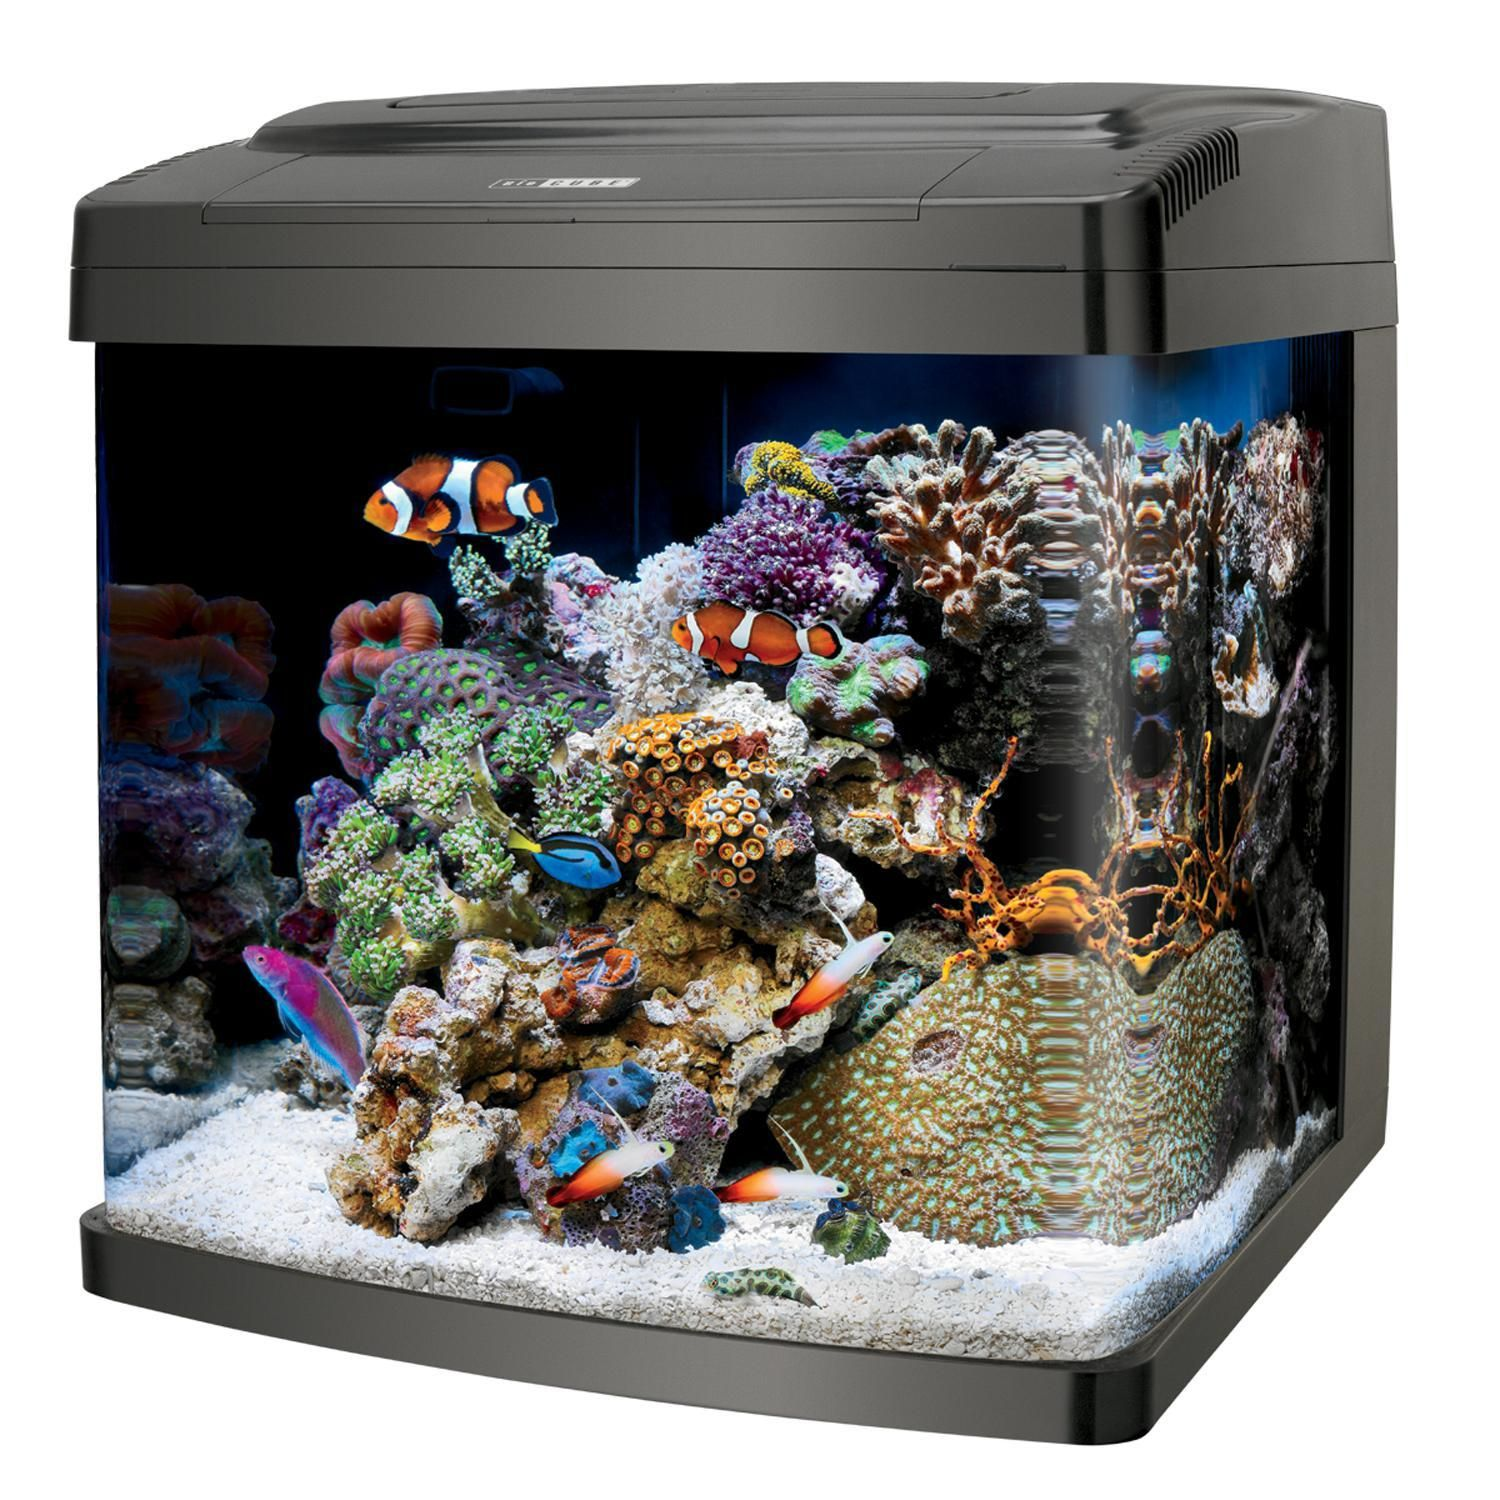 Coralife biocube pc led fish tank saltwater reef for Saltwater fish for small tank